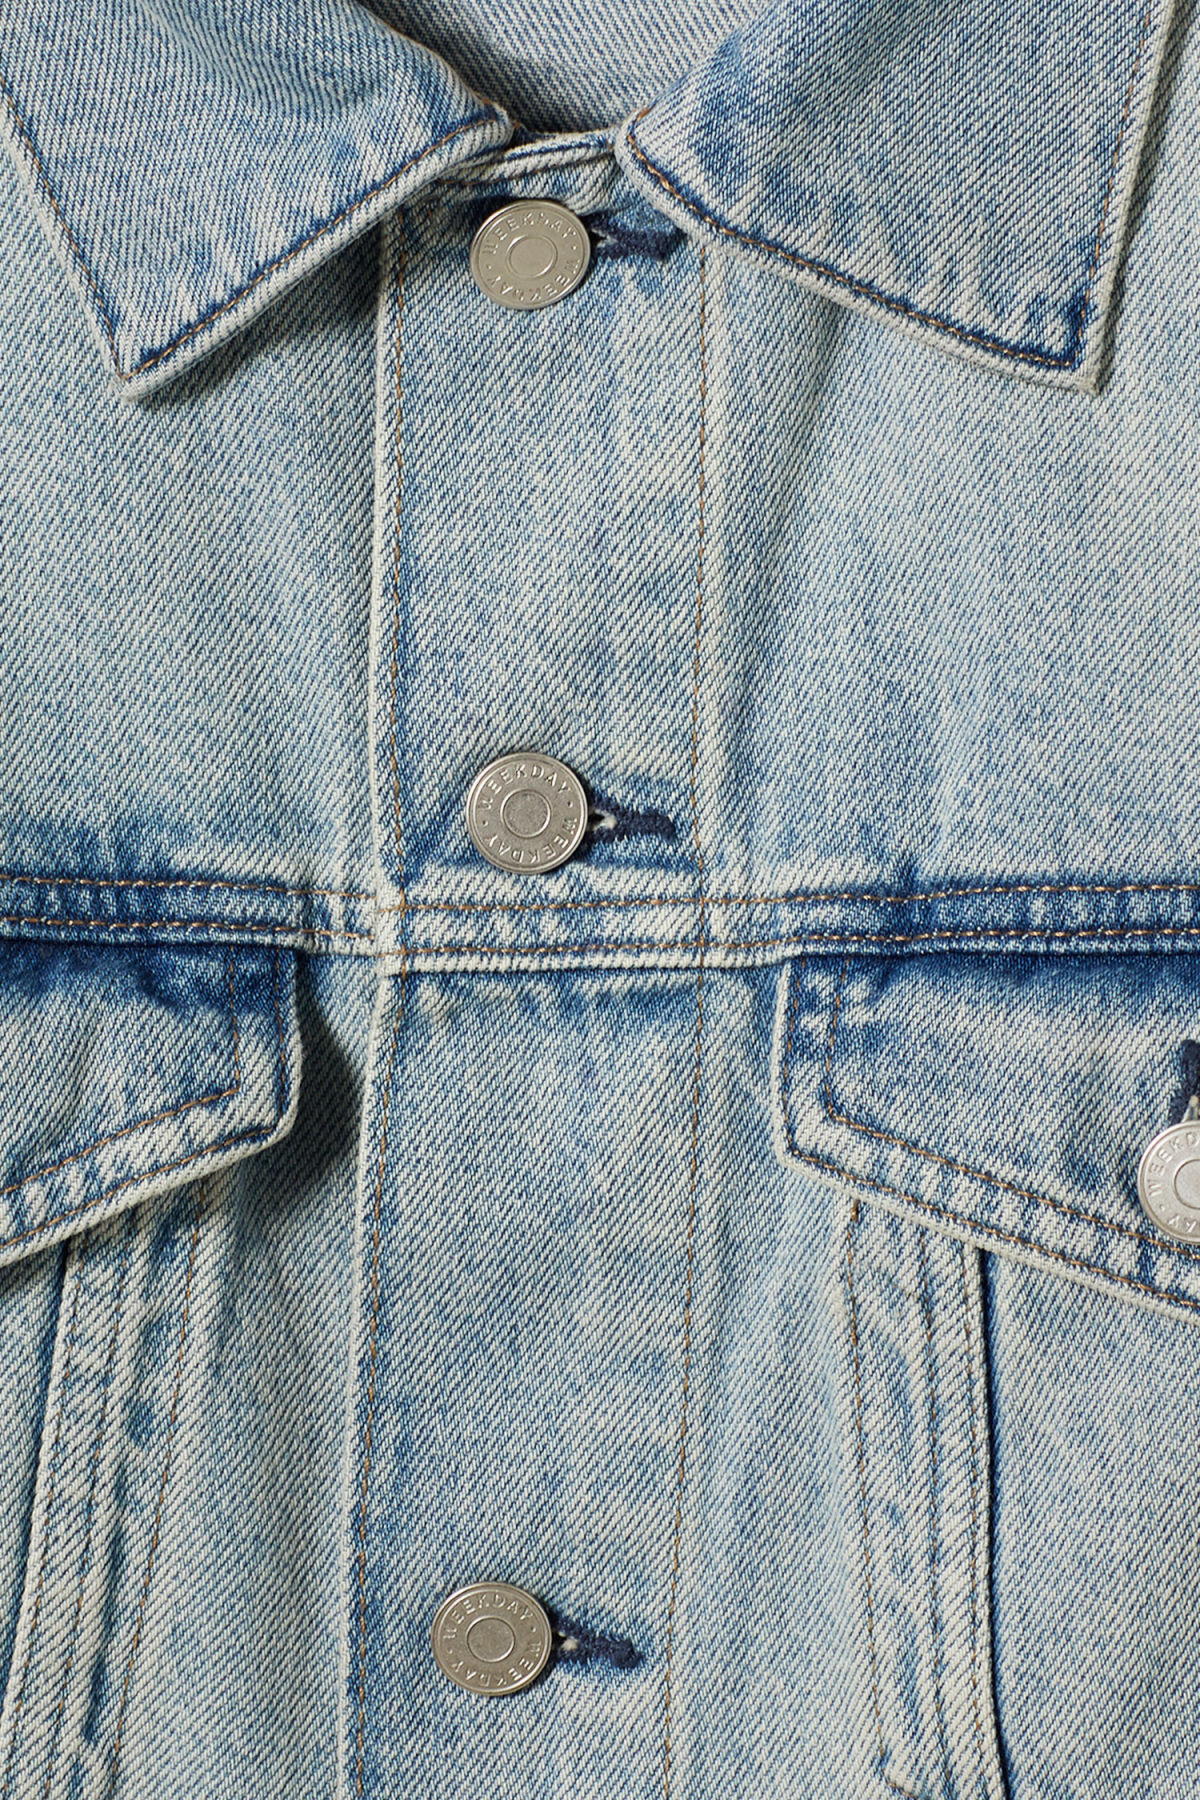 Detailed image of Weekday single spring blue jacket in blue